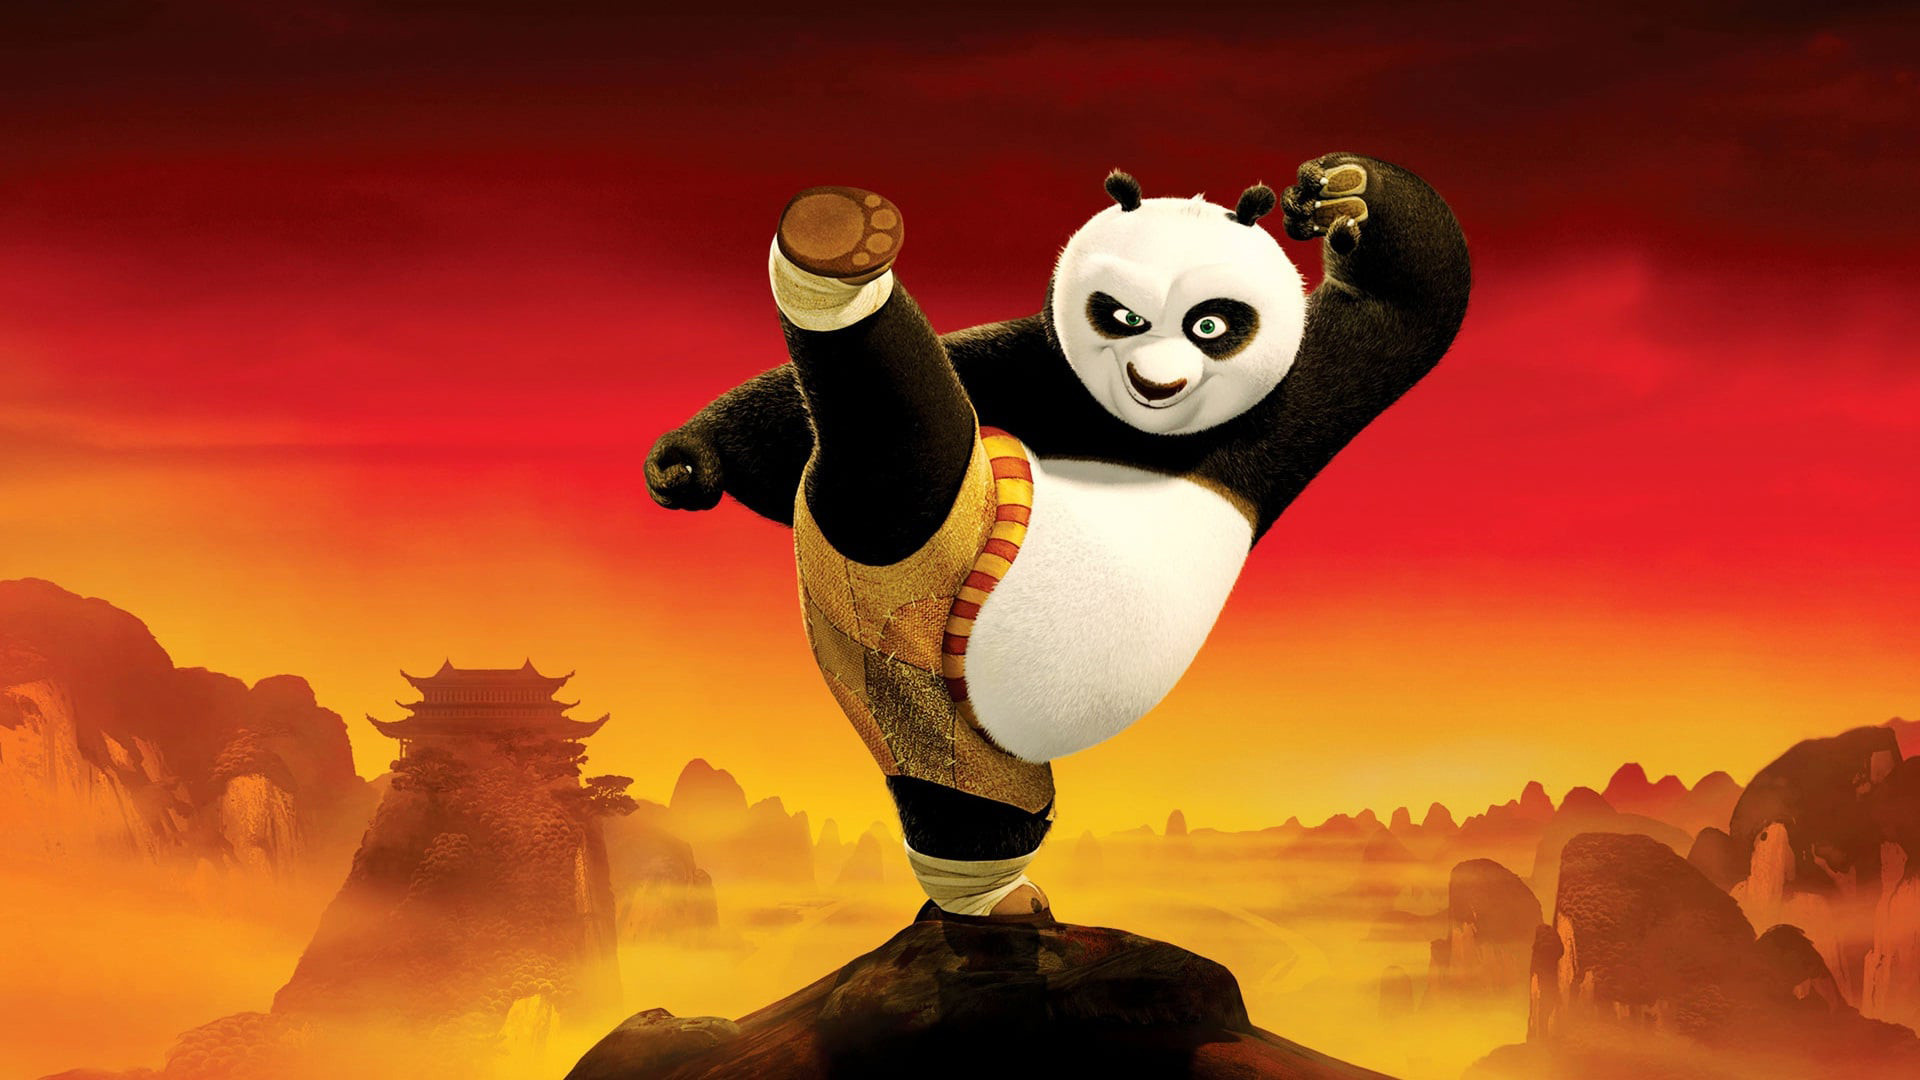 Res: 1920x1080, Kung Fu Panda 3 Free Wallpapers for Desktop   HD Movie Wallpapers